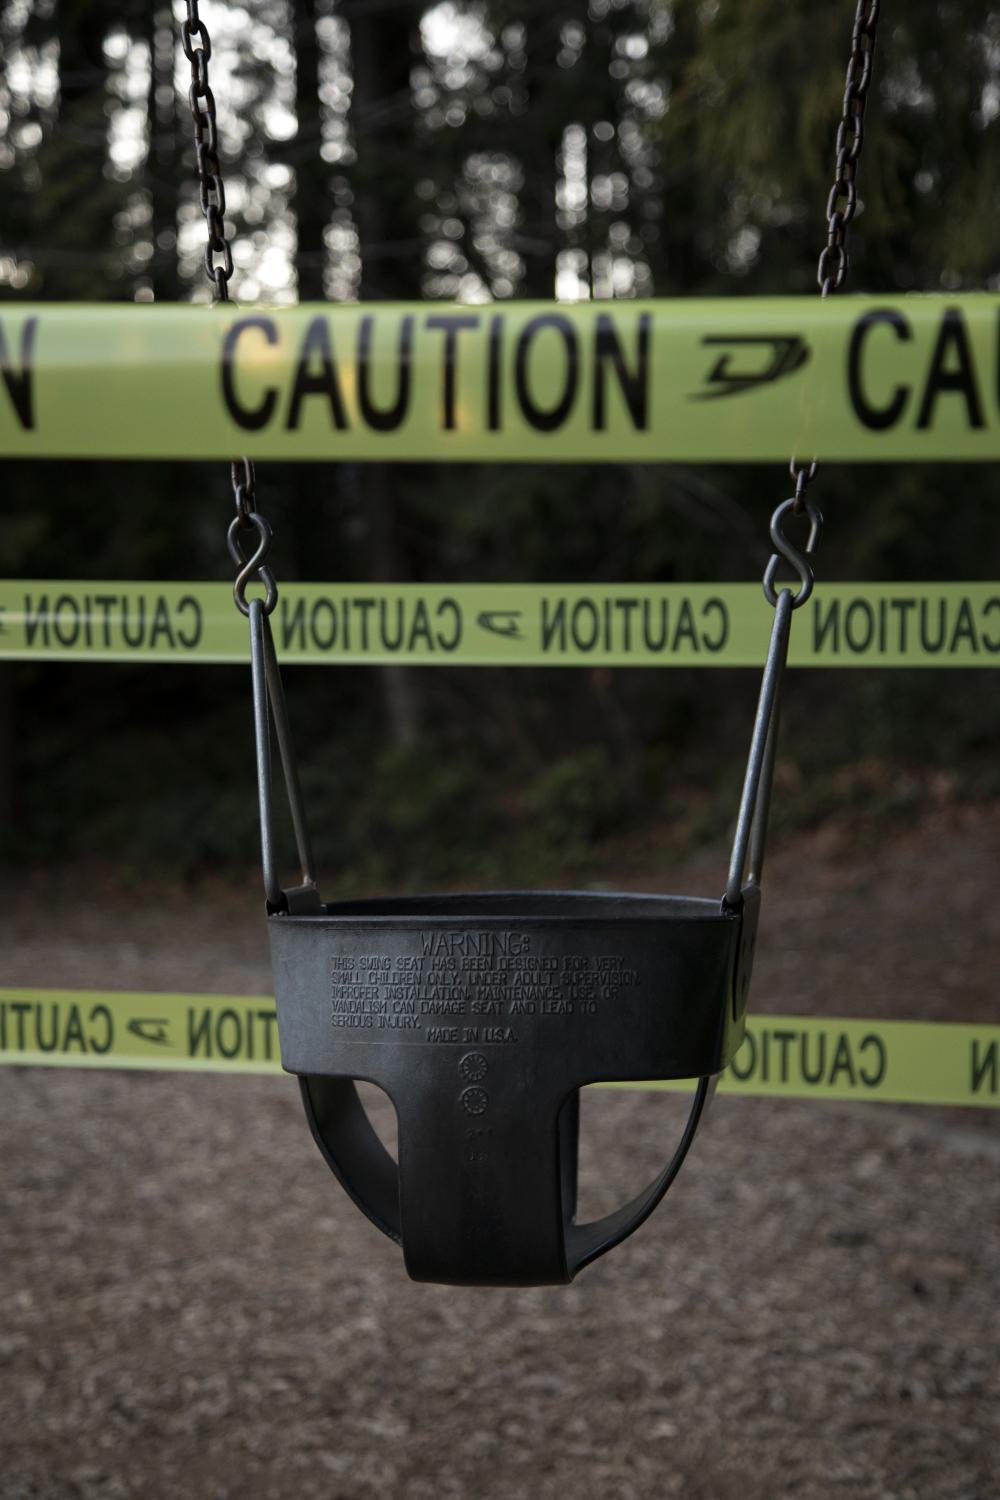 A playground at Cleveland Park in North Vancouver, B.C. is cordoned off on Friday, March 20, 2020. Effective Friday, March 20, 2020, the City and District of North Vancouver have closed all playgrounds and playing fields in an attempt to curb the spread of COVID-19. North Vancouver has been a hotspot of COVID-19, with ten deaths connected to the Lynn Valley Care Centre as of Monday, March 23, 2020.